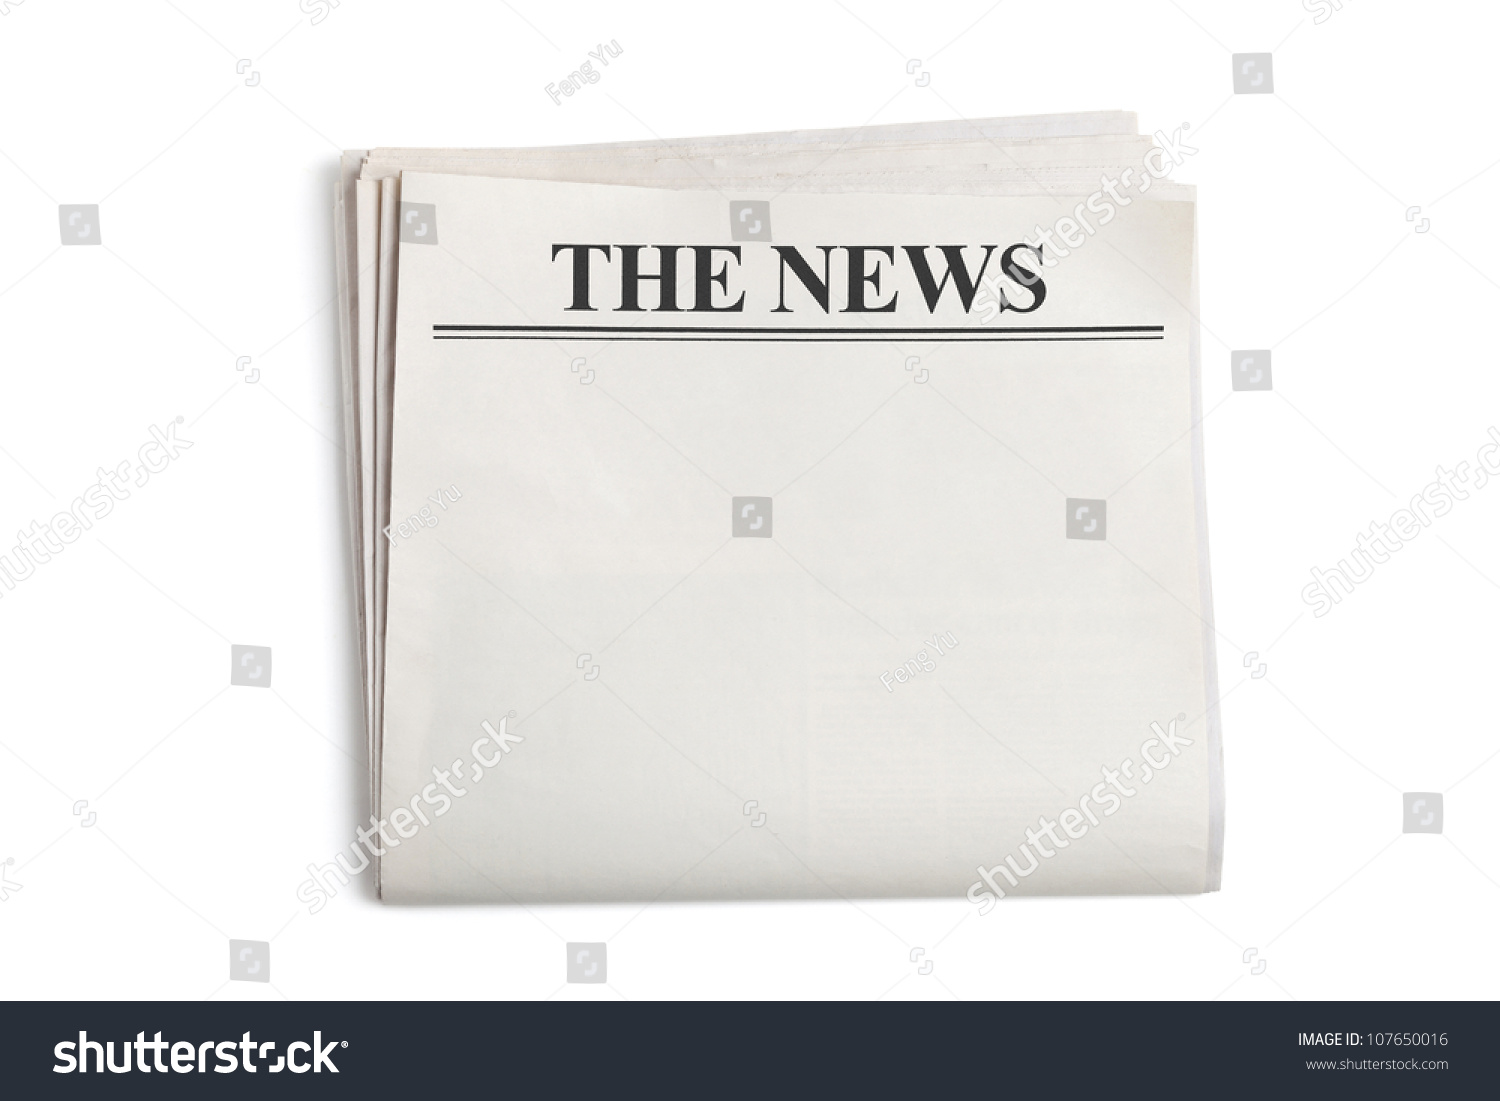 blank newspaper background - c # ile web' e hükmedin!